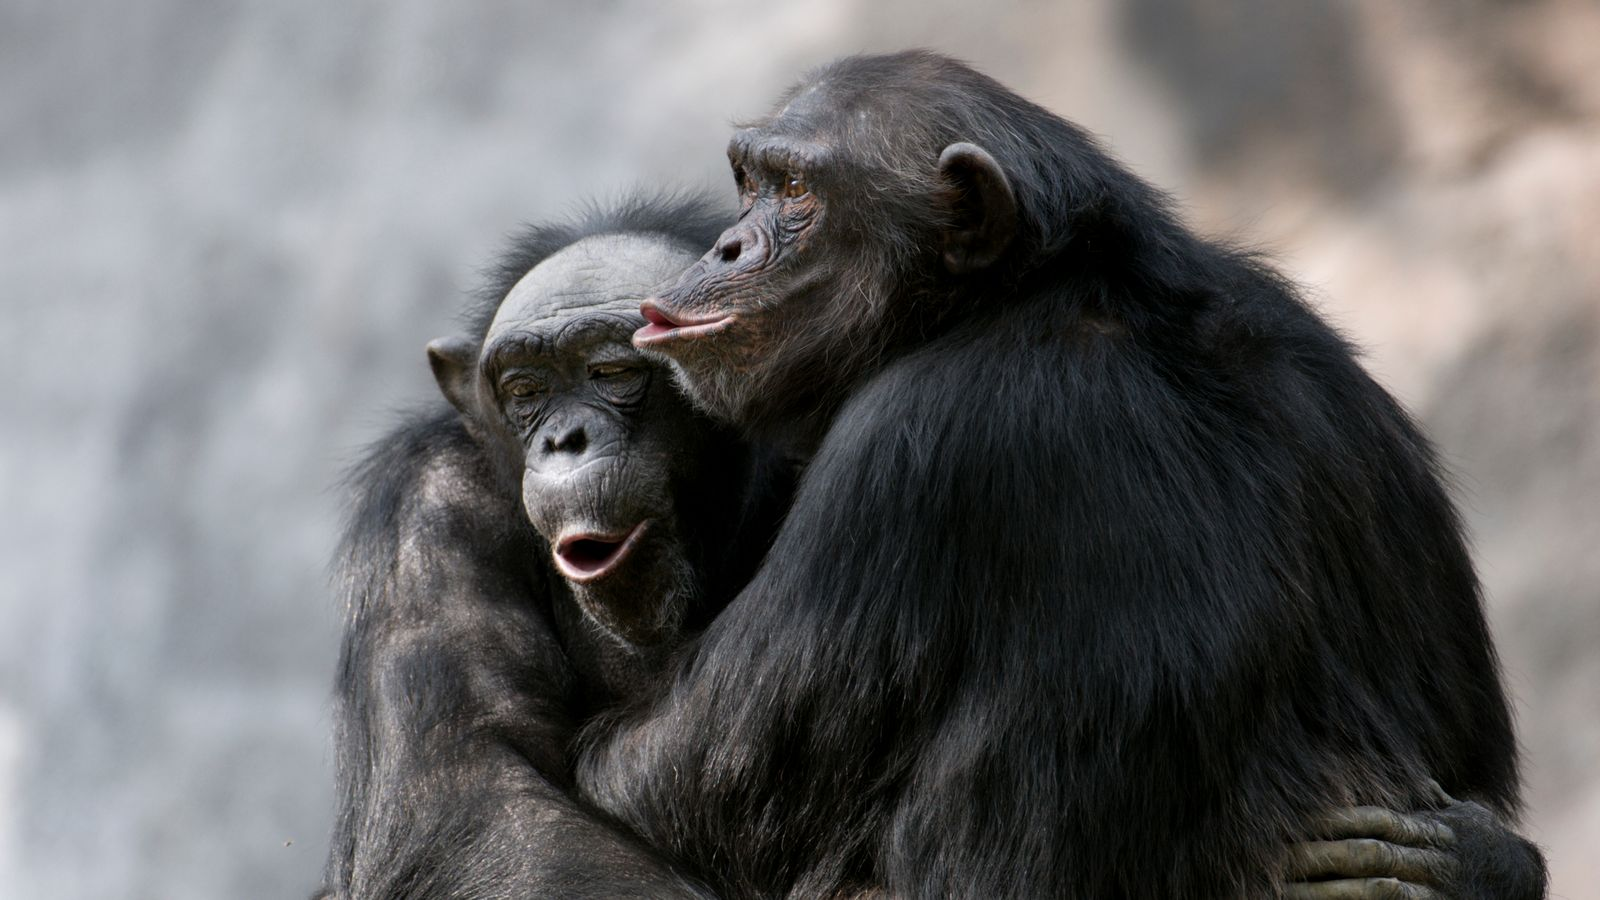 'Dancing' chimps like to clap along to music - EpicNews